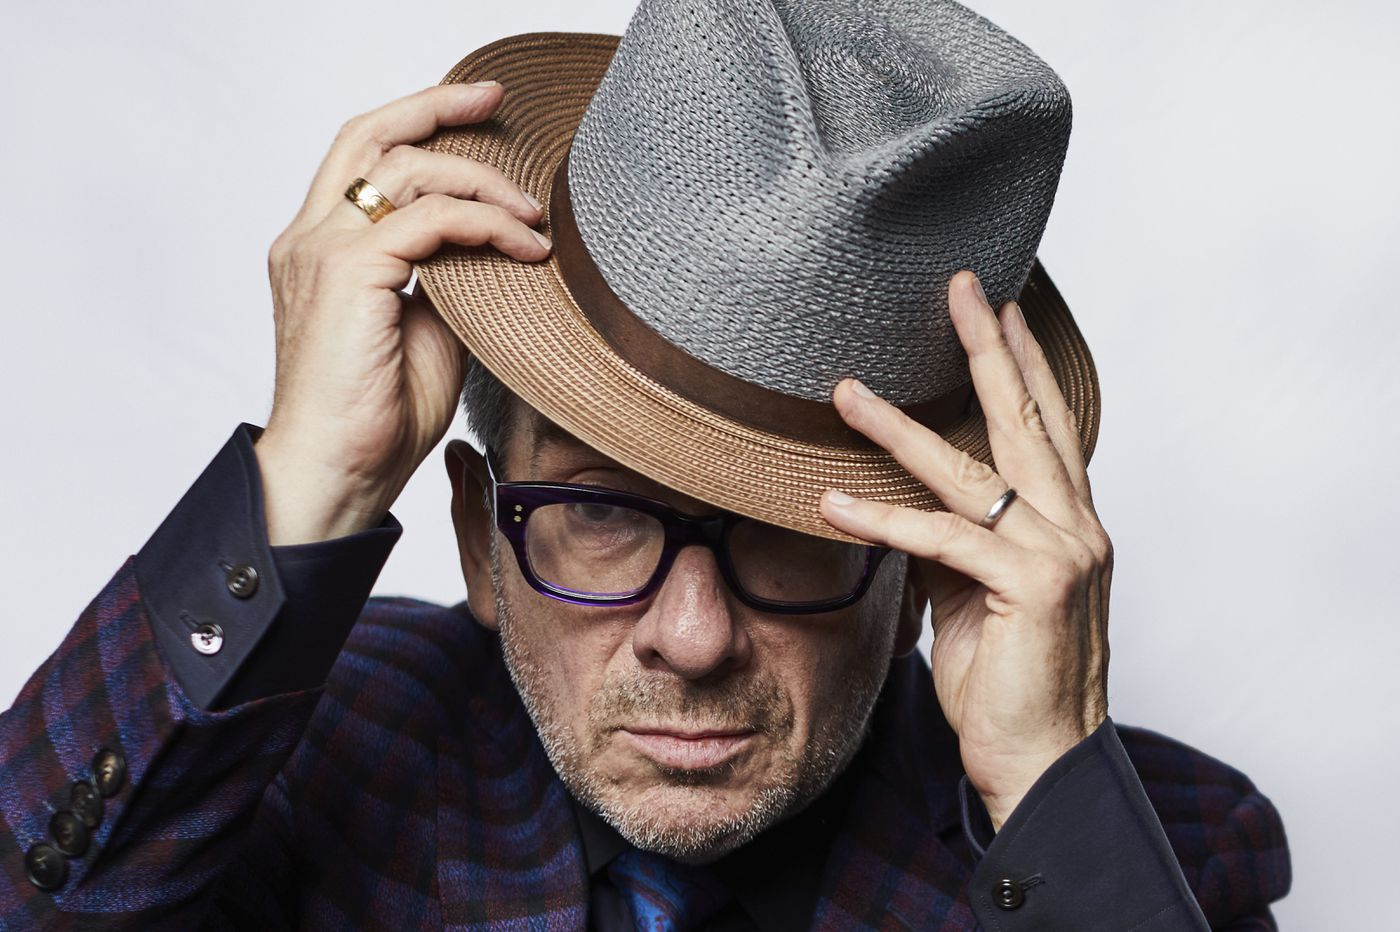 Elvis Costello, Anderson Cooper and Andy Cohen, Election Day Family Festival, Great Harvest Cider and Beer Festival and other events in the Philadelphia region, Nov. 2-8